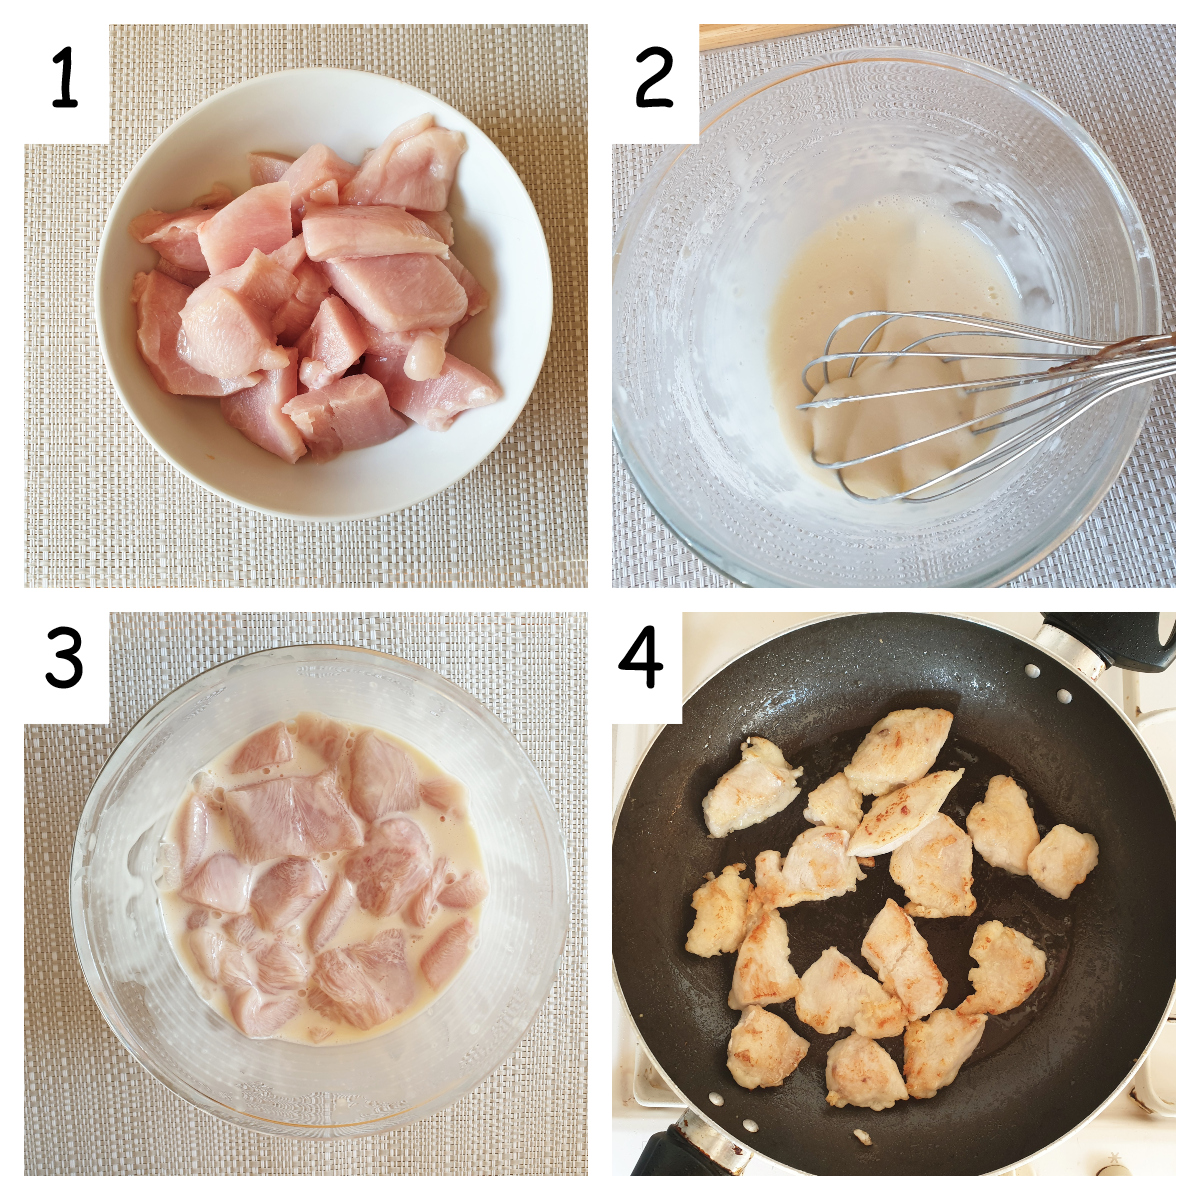 First collage of images showing steps for making sesame chicken.